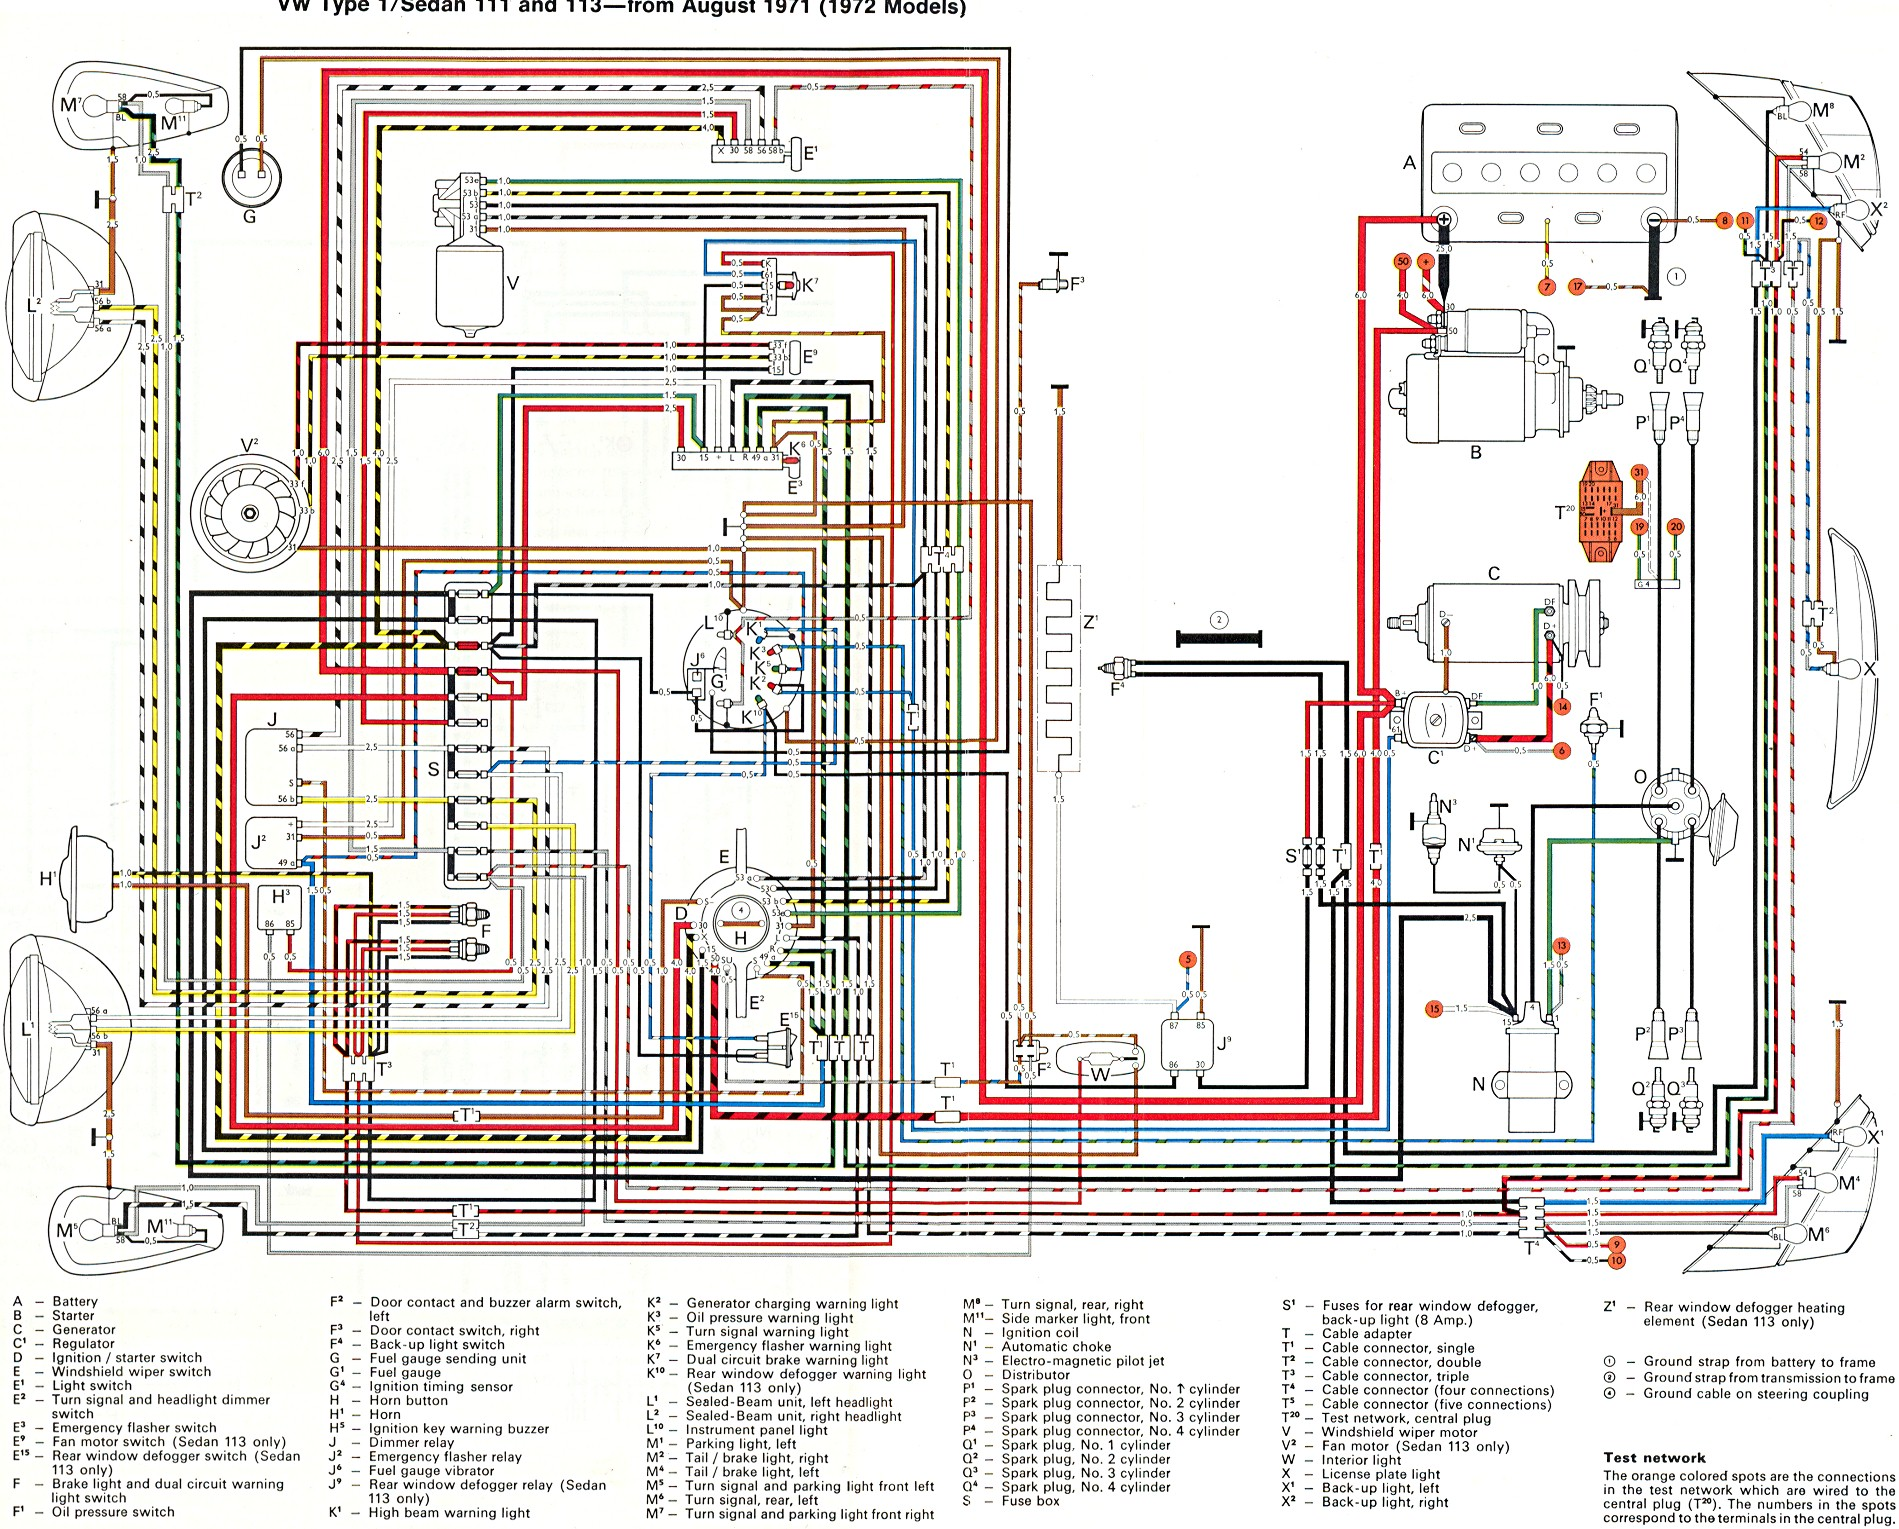 1970 Vw Engine Wiring Diagram Schemes 1974 Corvette Fuse Box Location Experts Of U2022 Rh Evilcloud Co Uk Alternator